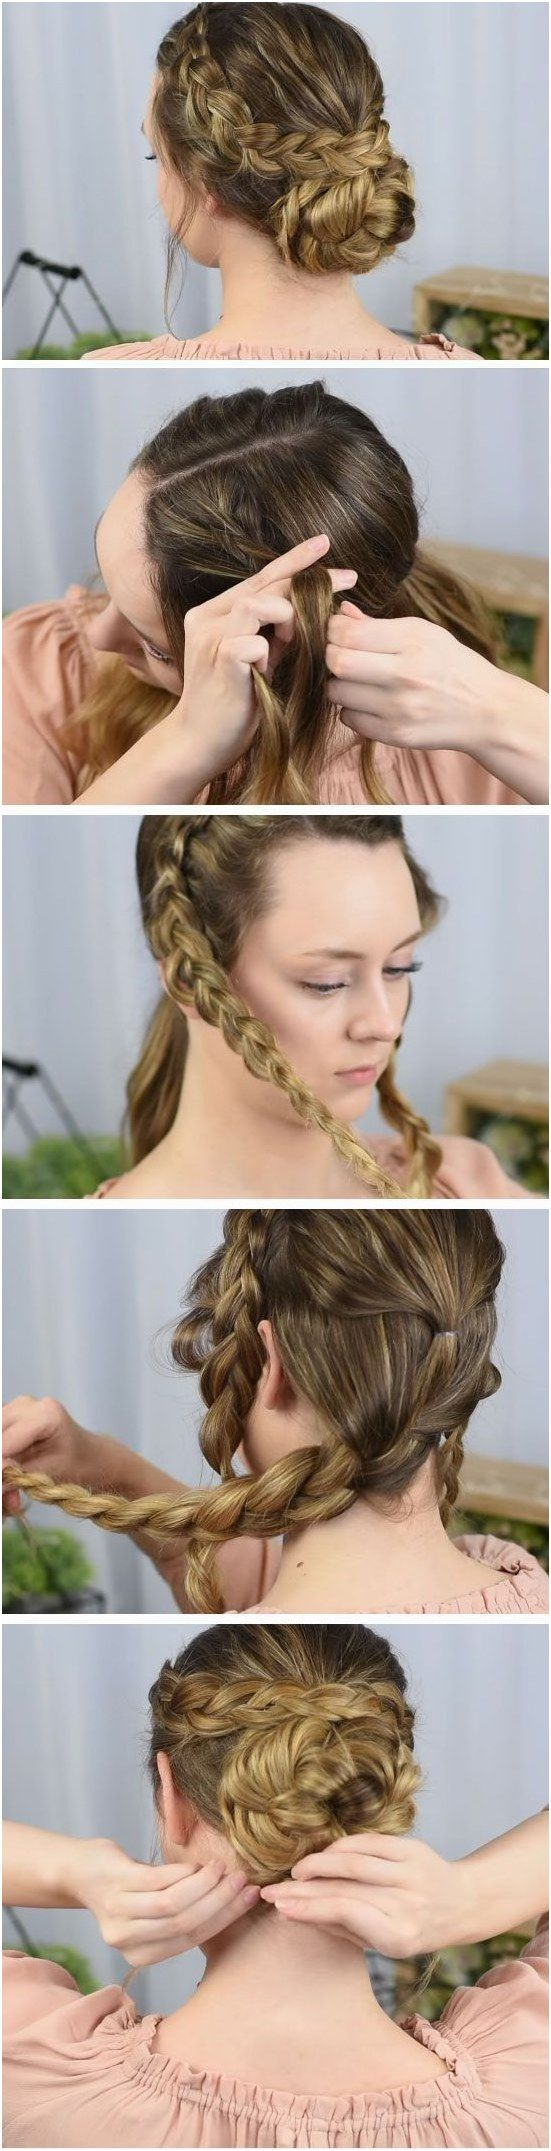 Dutch Braided Up Do Quick Diy Prom Hairstyles For Medium Hair Quick And Easy Homecomi Prom Hair Medium Easy Homecoming Hairstyles Medium Length Hair Styles